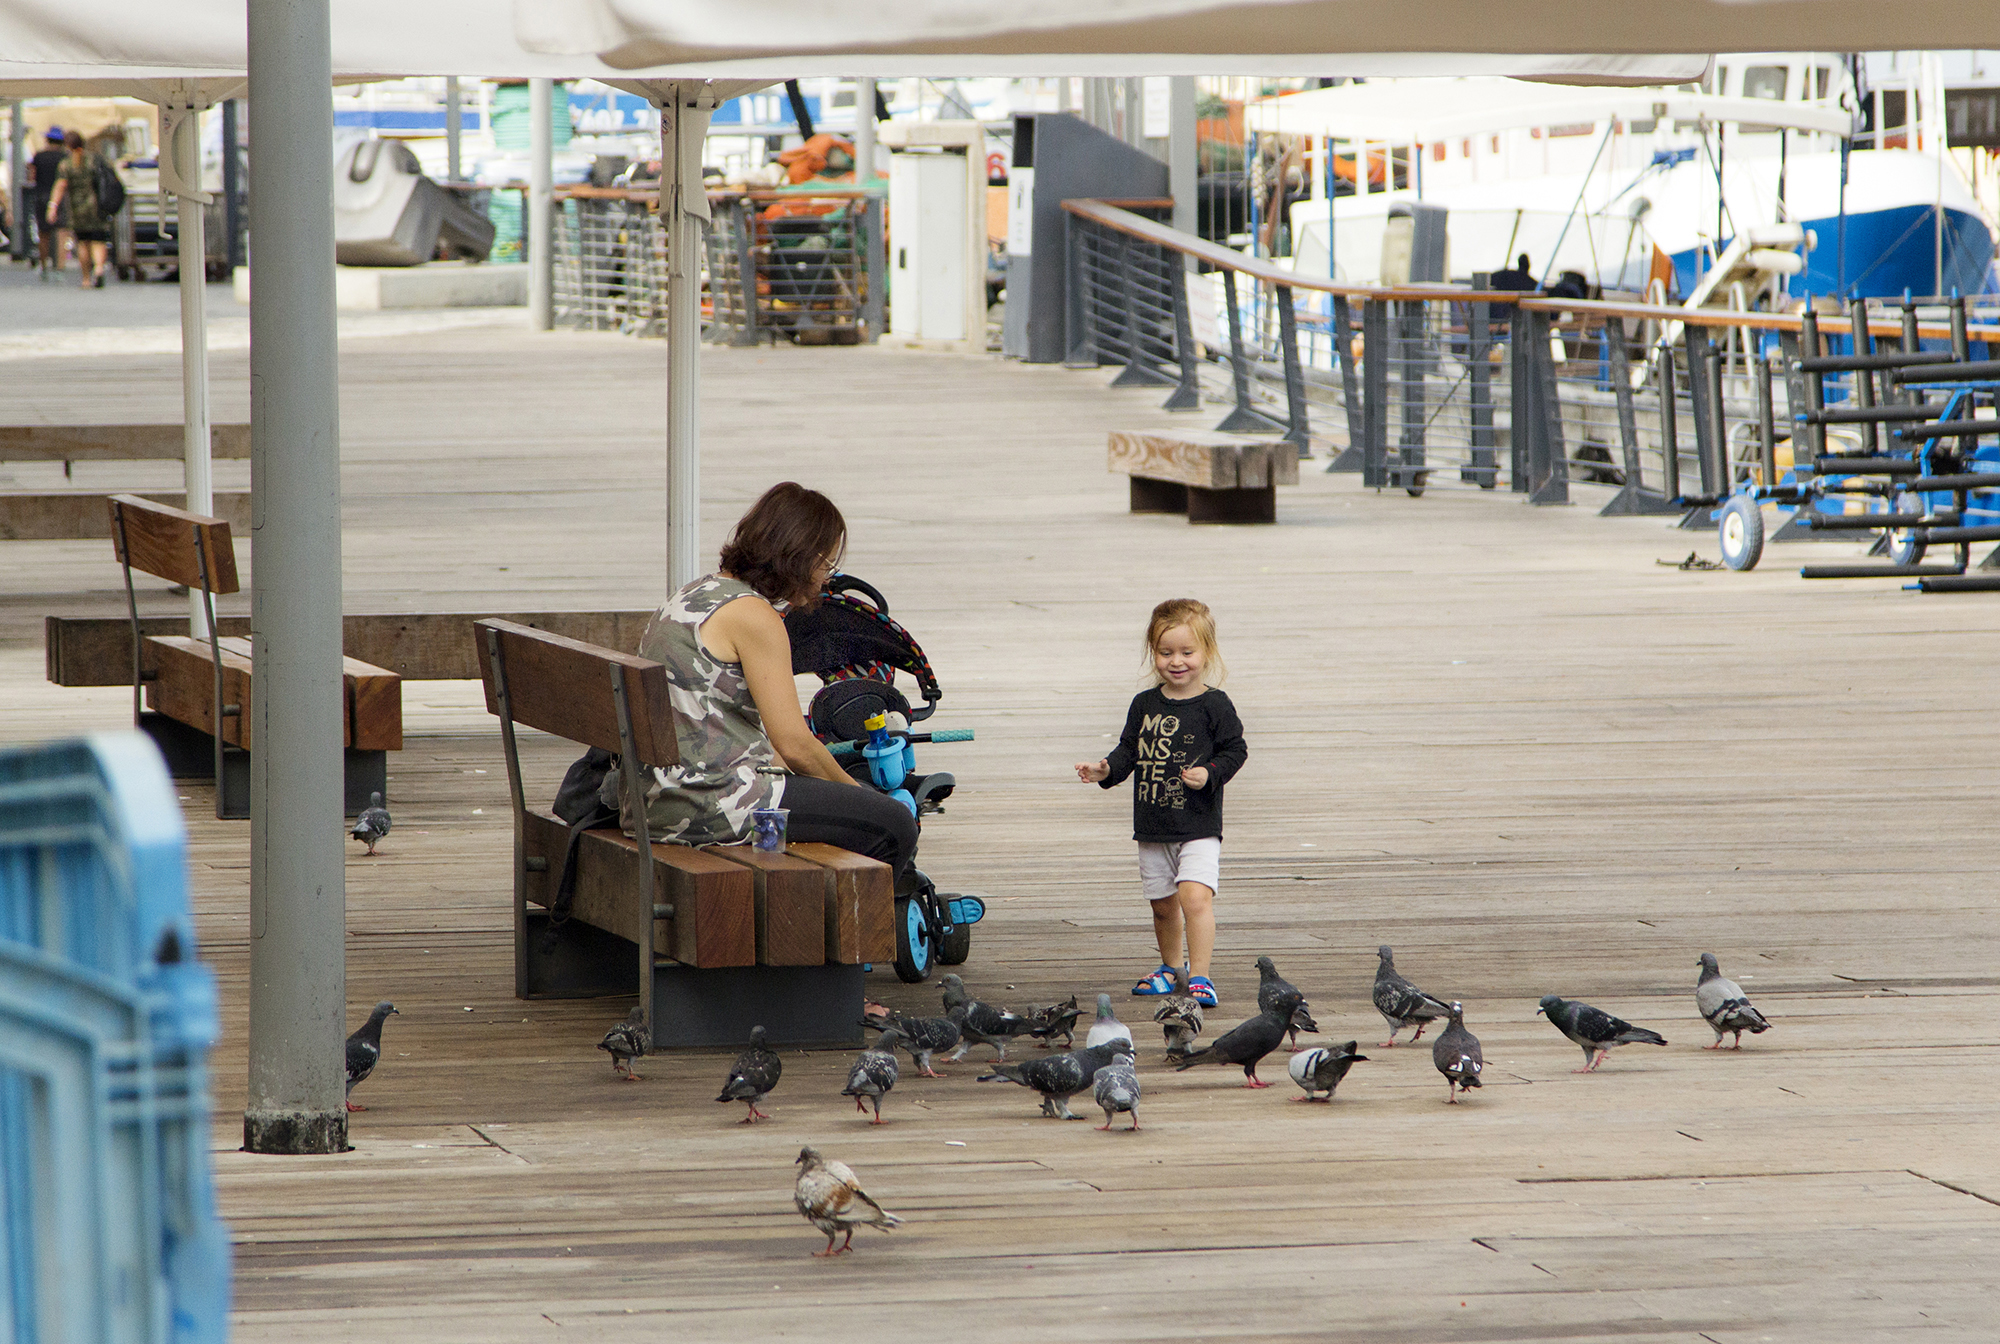 A child playing with the birds in Tel Aviv-Yafo, Israel. See more #travel photography by Geena Matuson @geenamatuson #thegirlmirage at thegirlmirage.com.